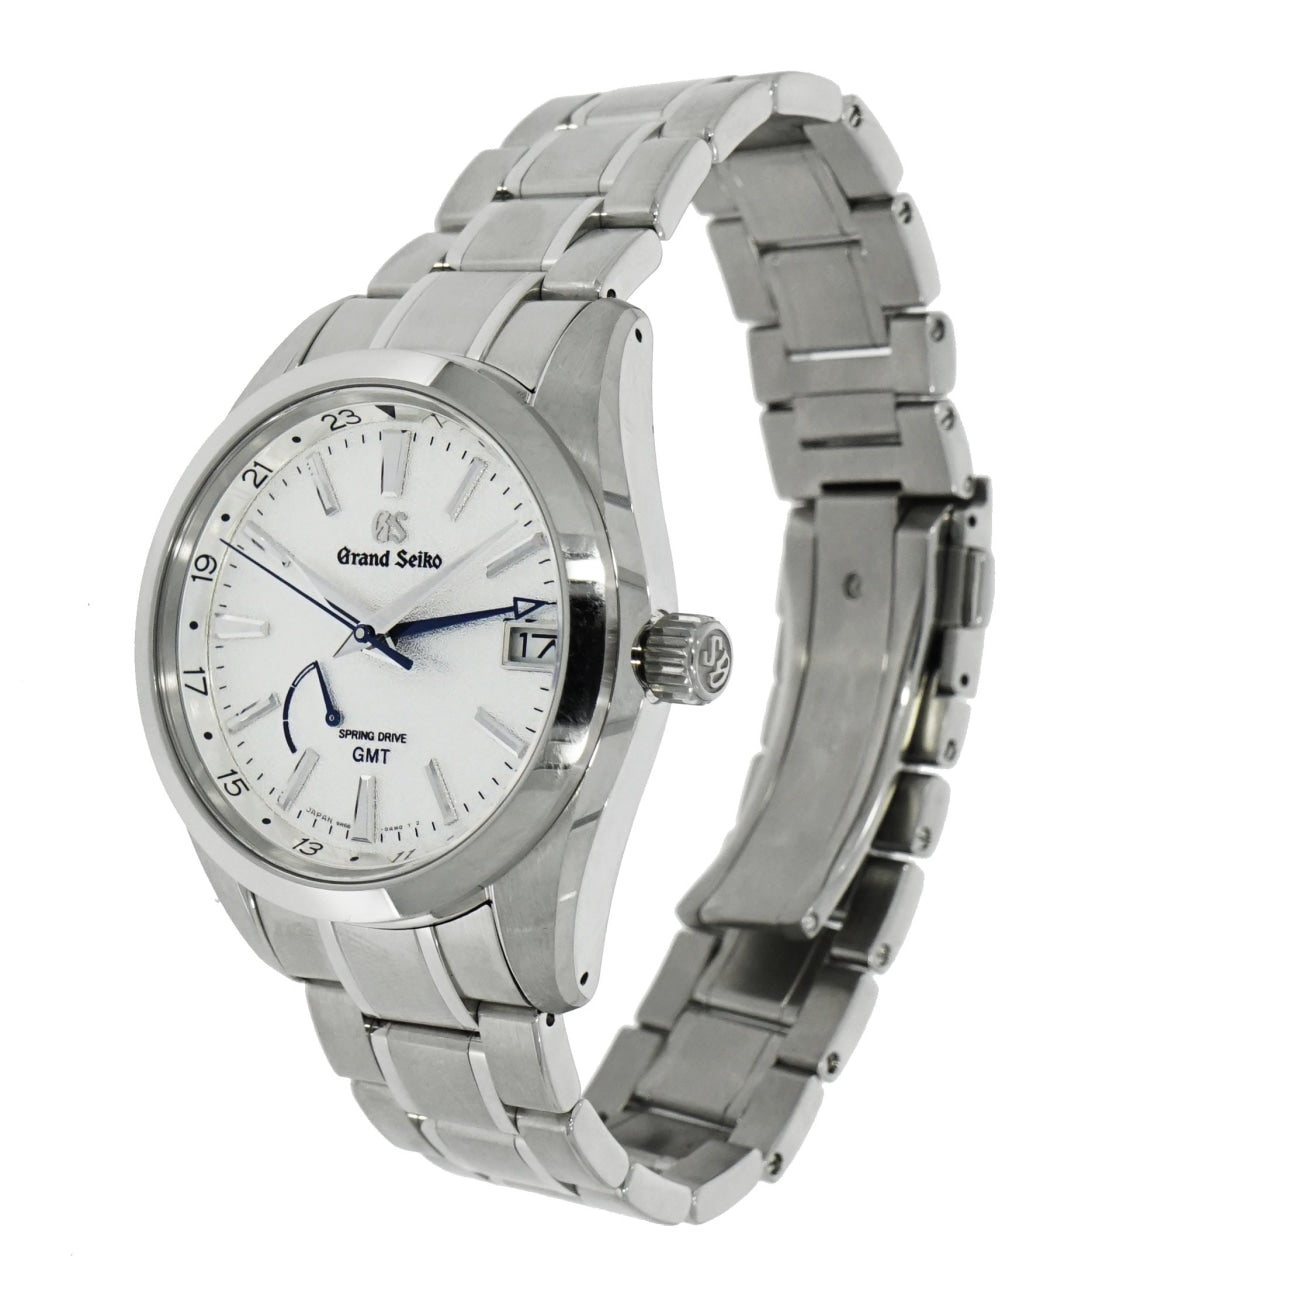 Vacheron Constantin Watches - Grand Seiko Spring Drive GMT Limited Edition SBGE249 | Manfredi Jewels